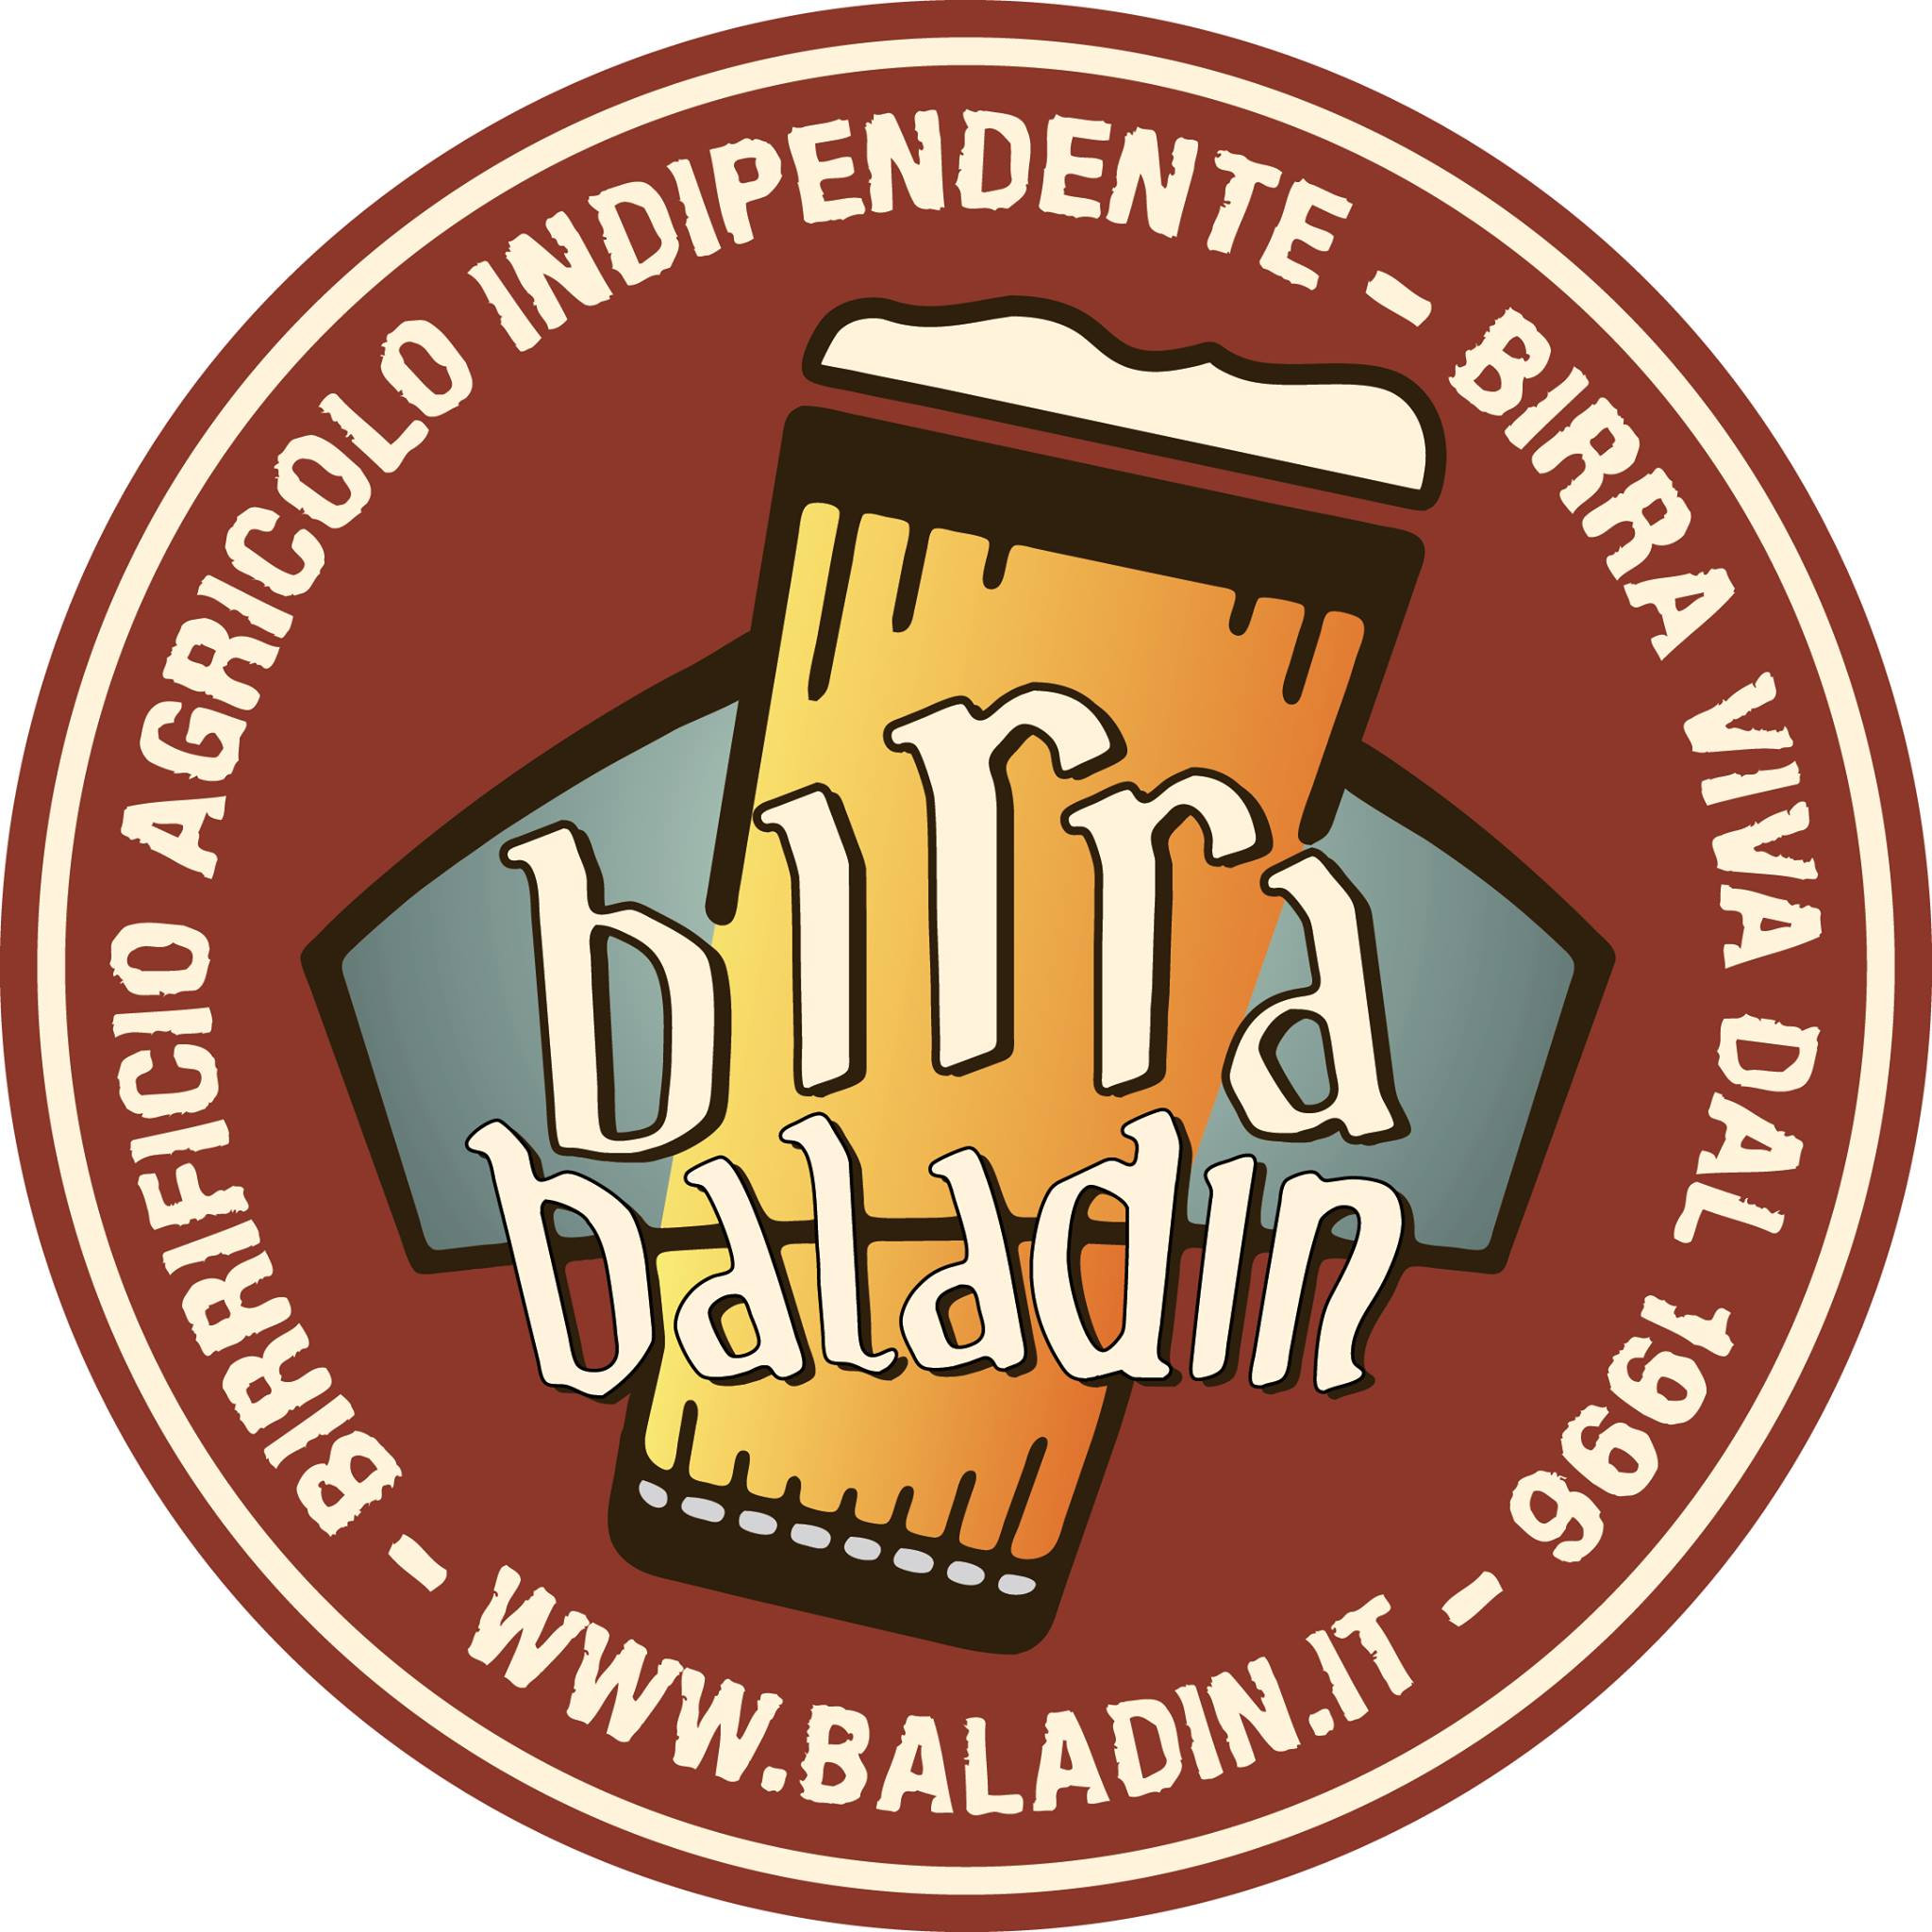 Birrificio Baladin